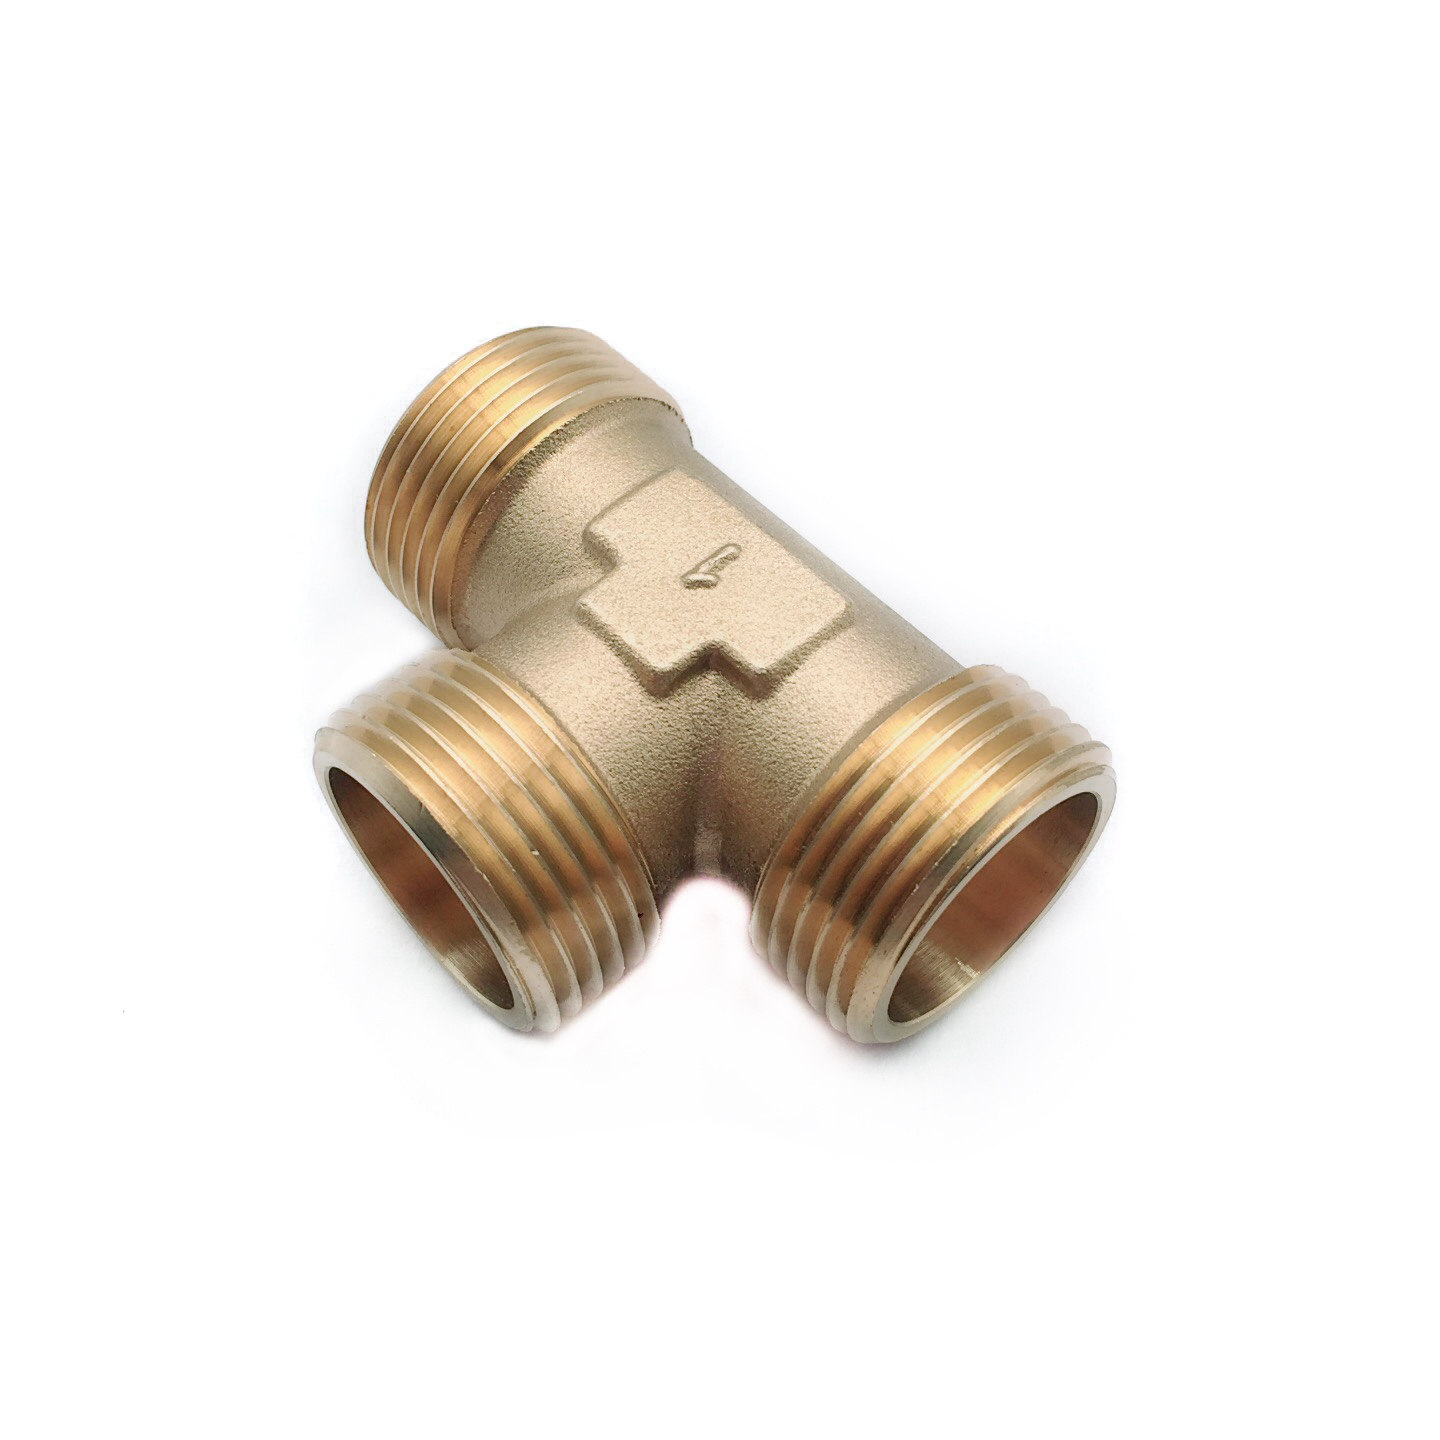 Good quality 3 way tee union brass pex fitting connecting use for water supply